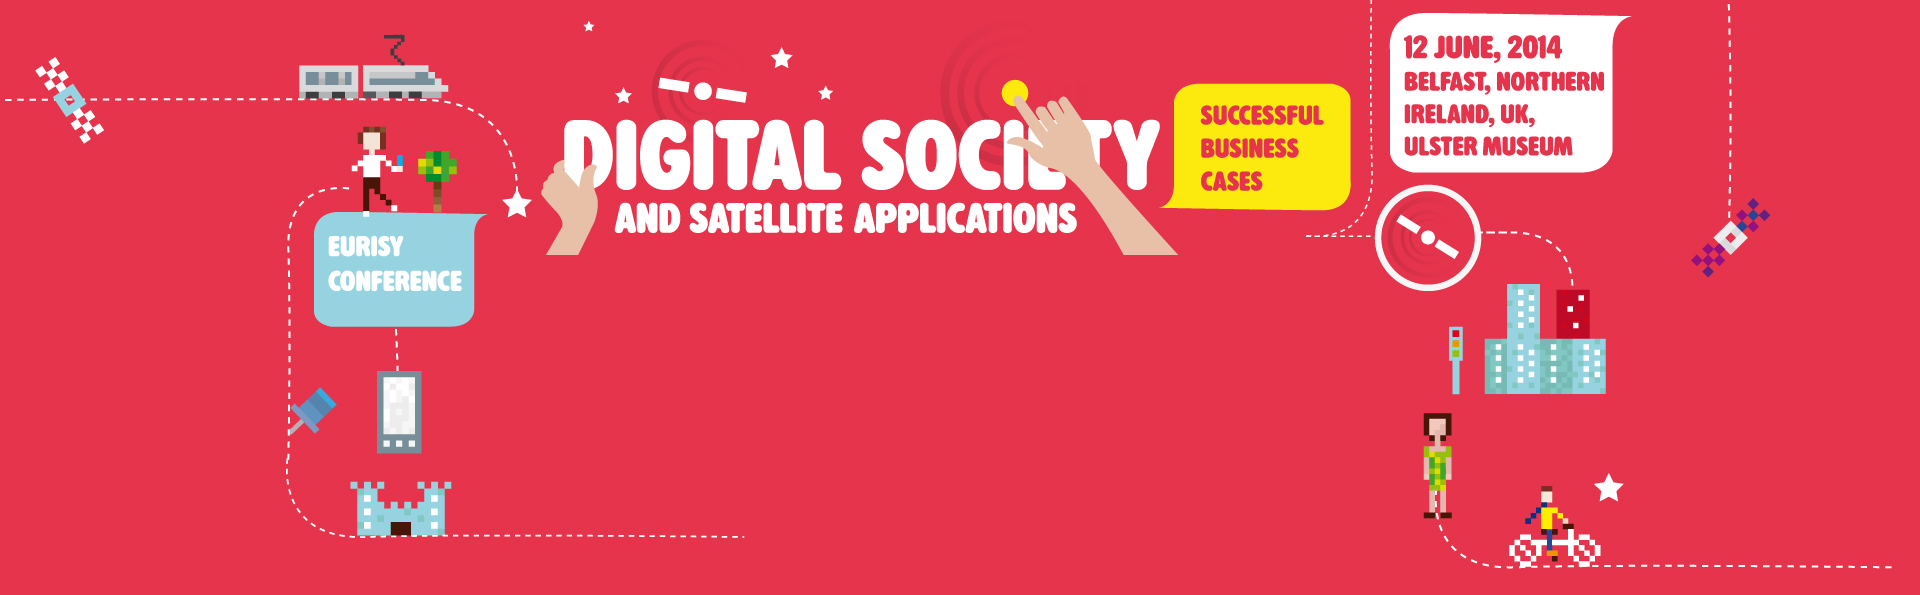 Digital society and satellite applications: successful business cases